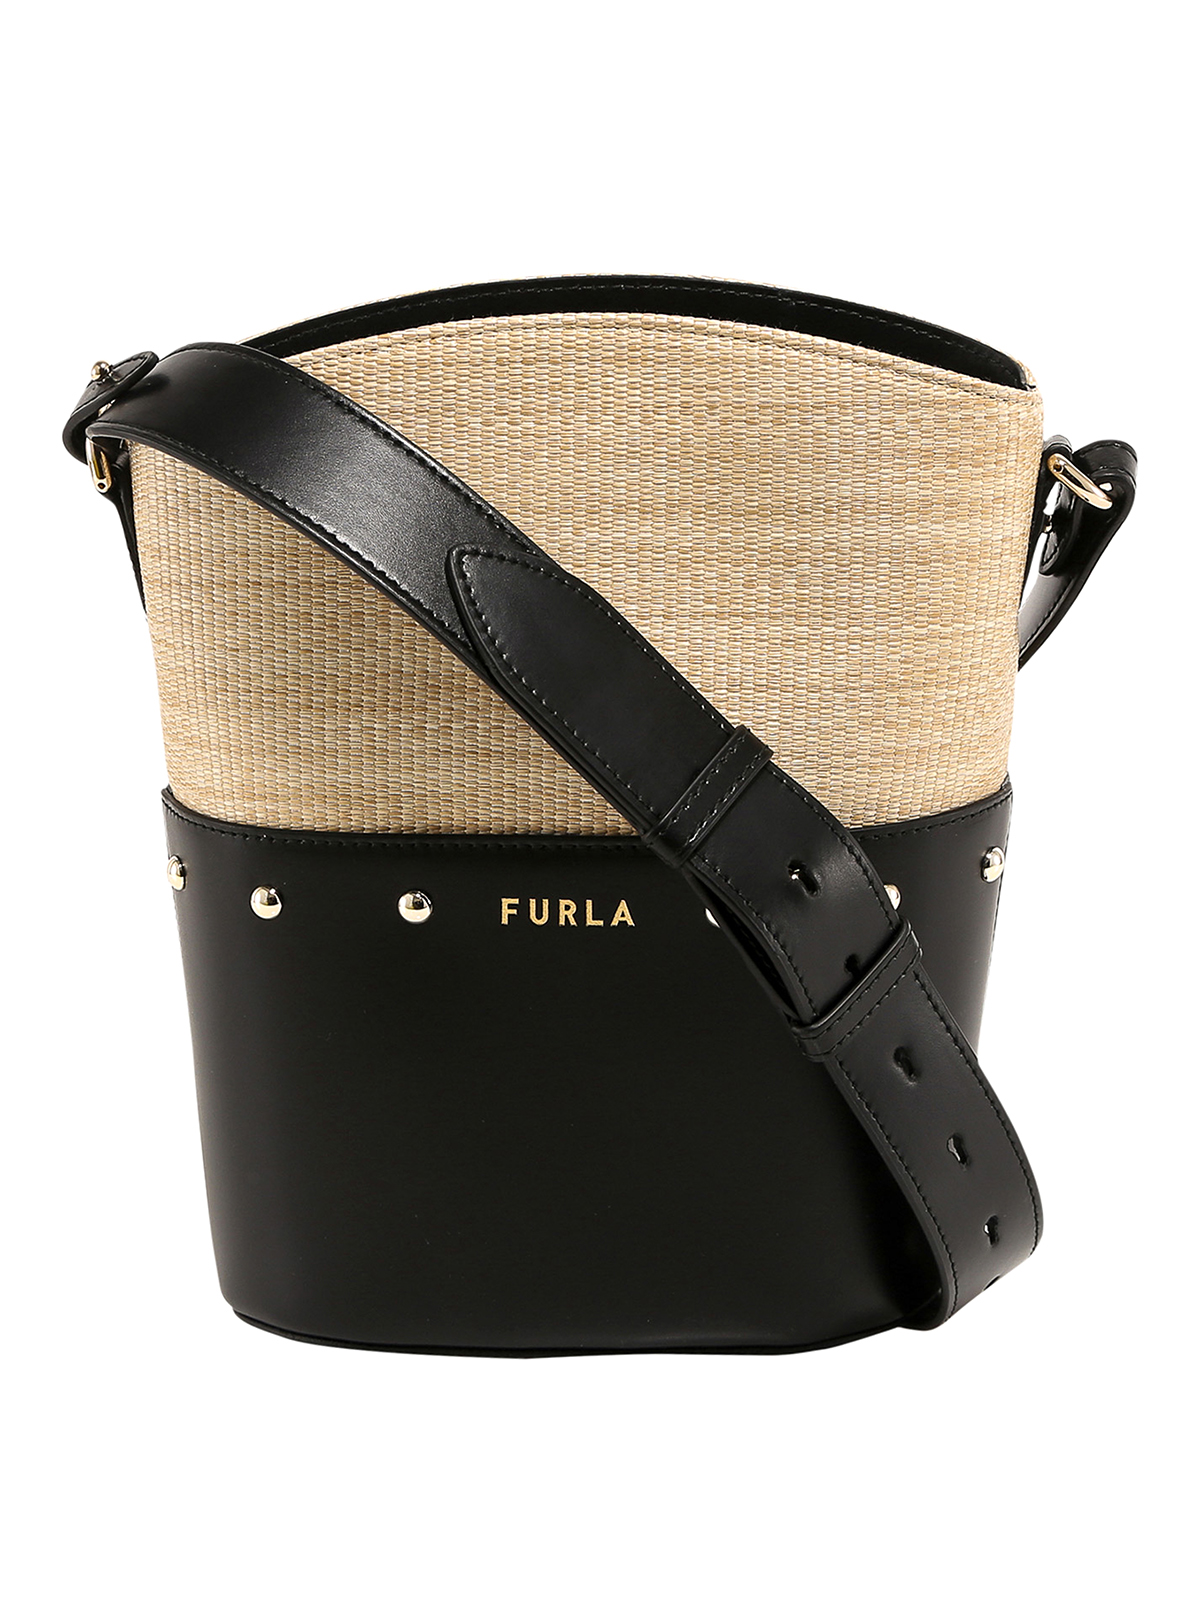 Furla Raffia And Leather Tote Bag In Beige And Black